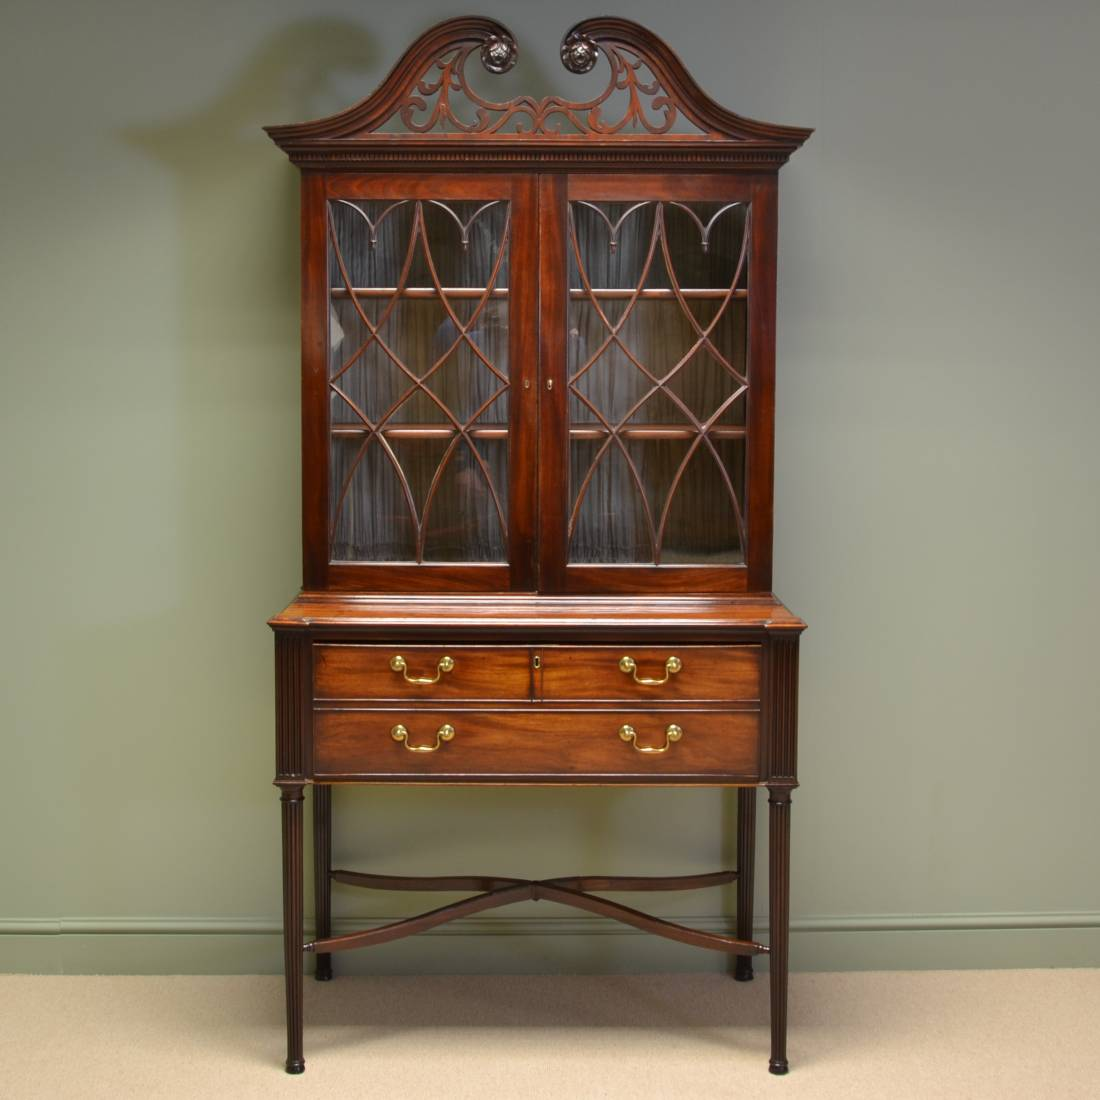 Magnificent Georgian Gillows Mahogany Antique Secretaire / Bookcase